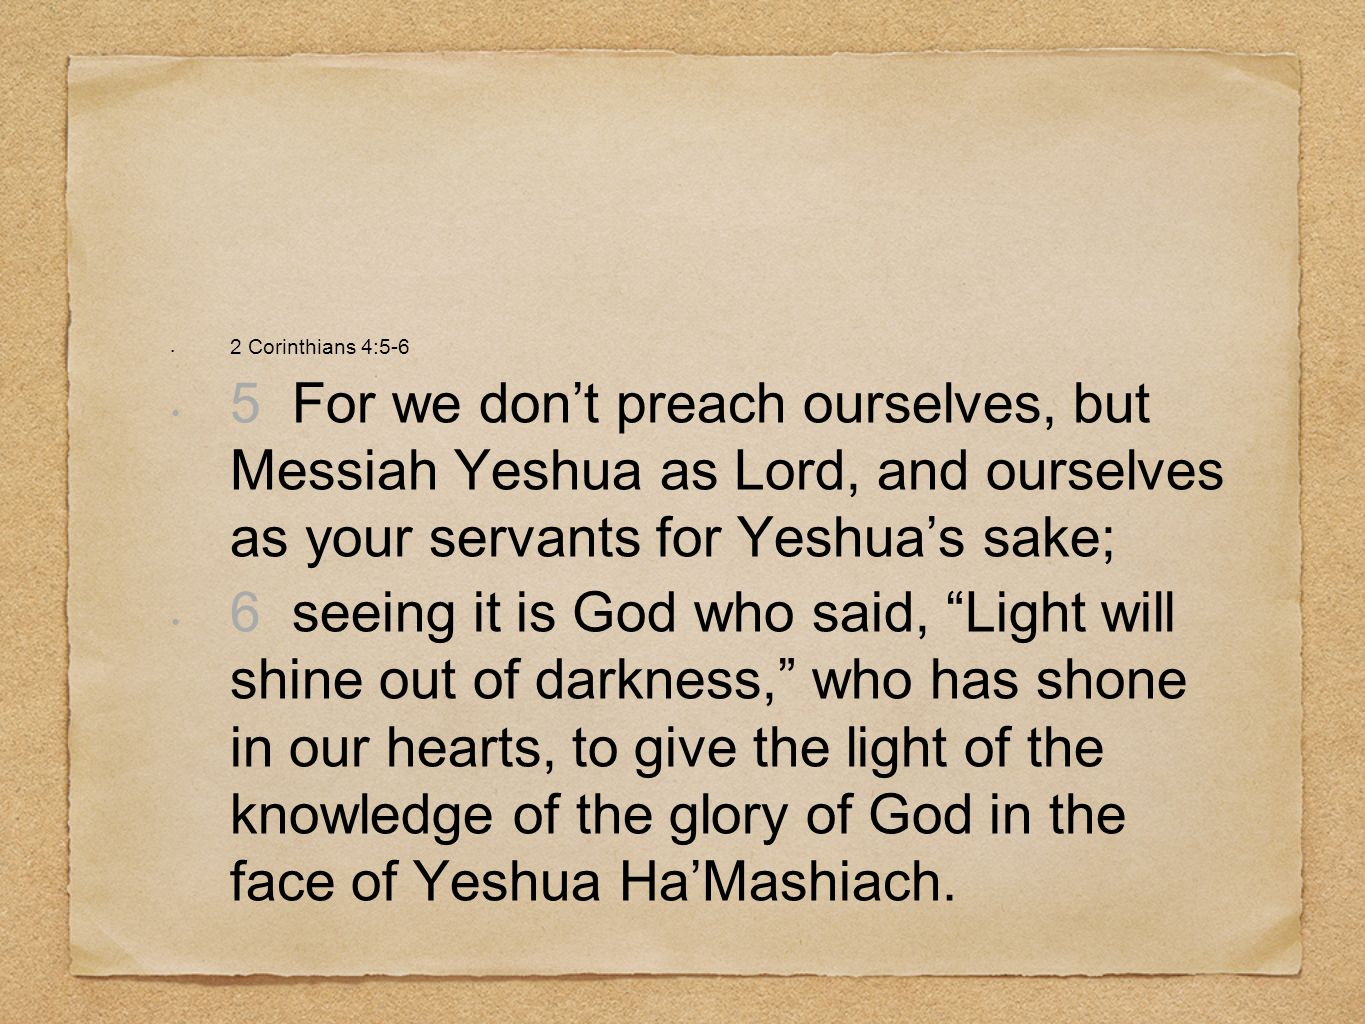 2 Corinthians 4:5-6 5 For we don't preach ourselves, but Messiah Yeshua as Lord, and ourselves as your servants for Yeshua's sake;